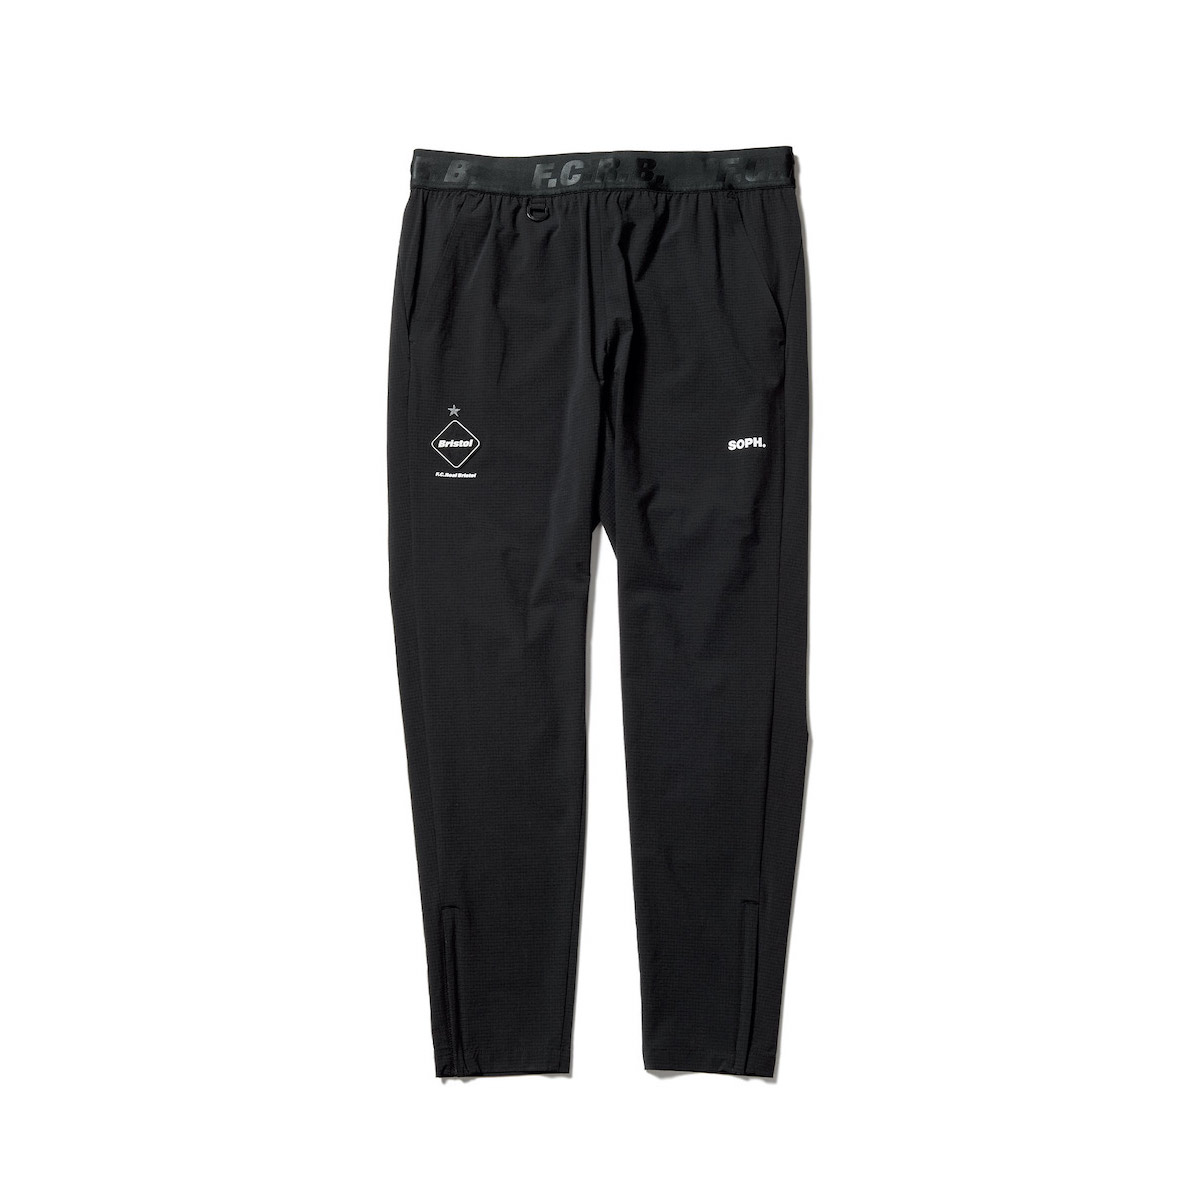 F.C.Real Bristol / STRETCH LIGHT WEIGHT EASY PANTS (Black)正面